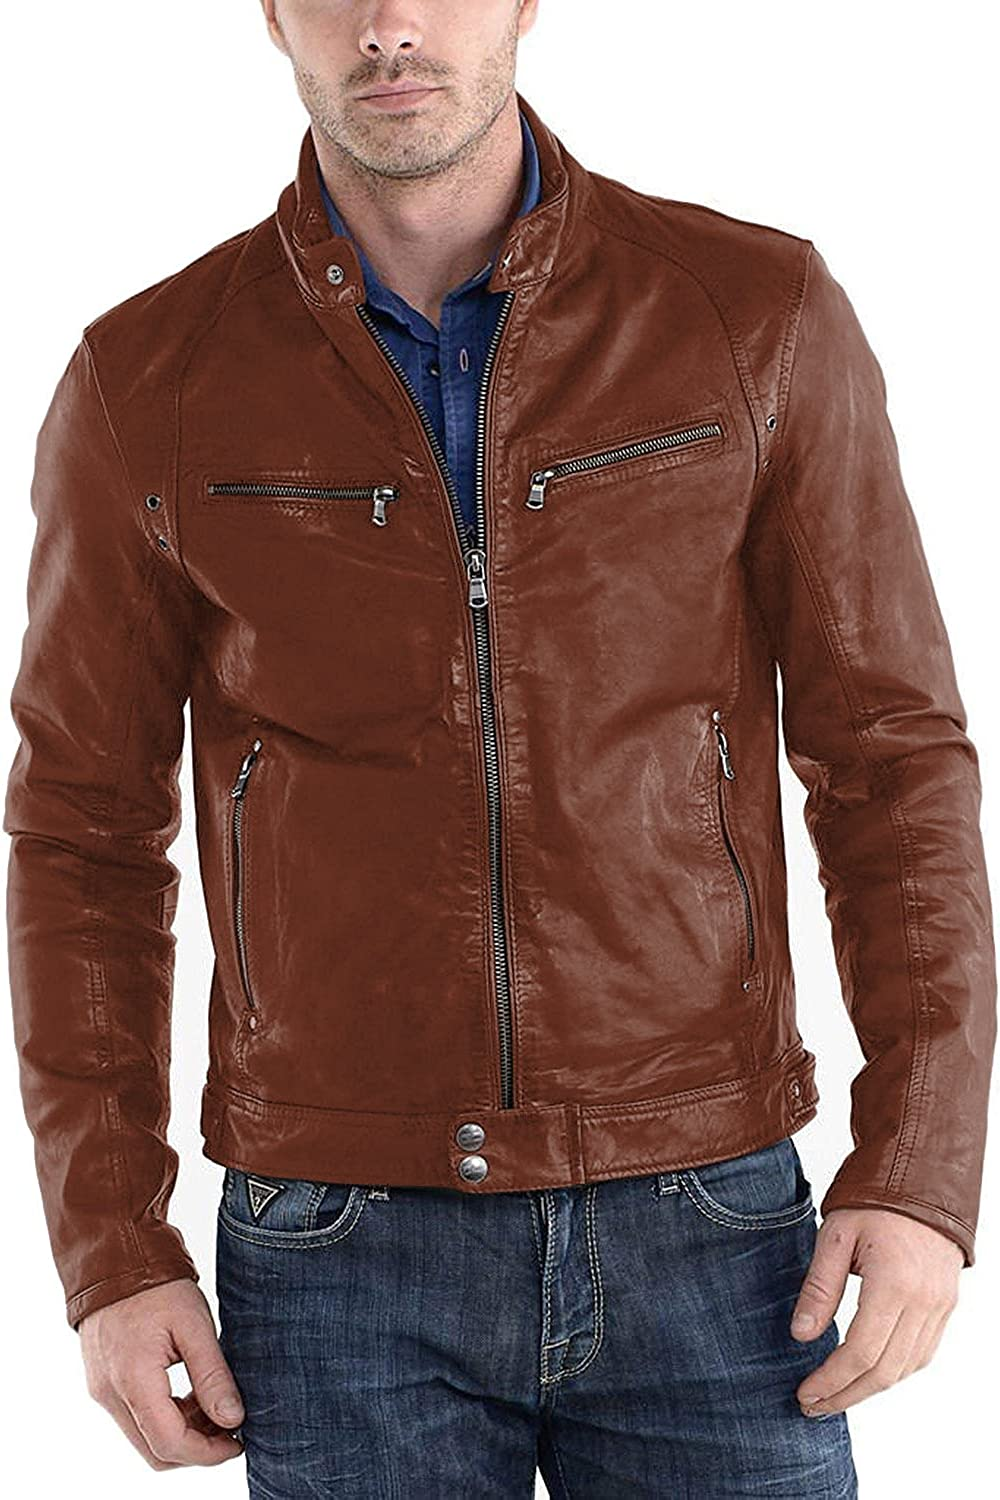 1501233 Laverapelle Mens Genuine Lambskin Leather Jacket Black, Racer Jacket